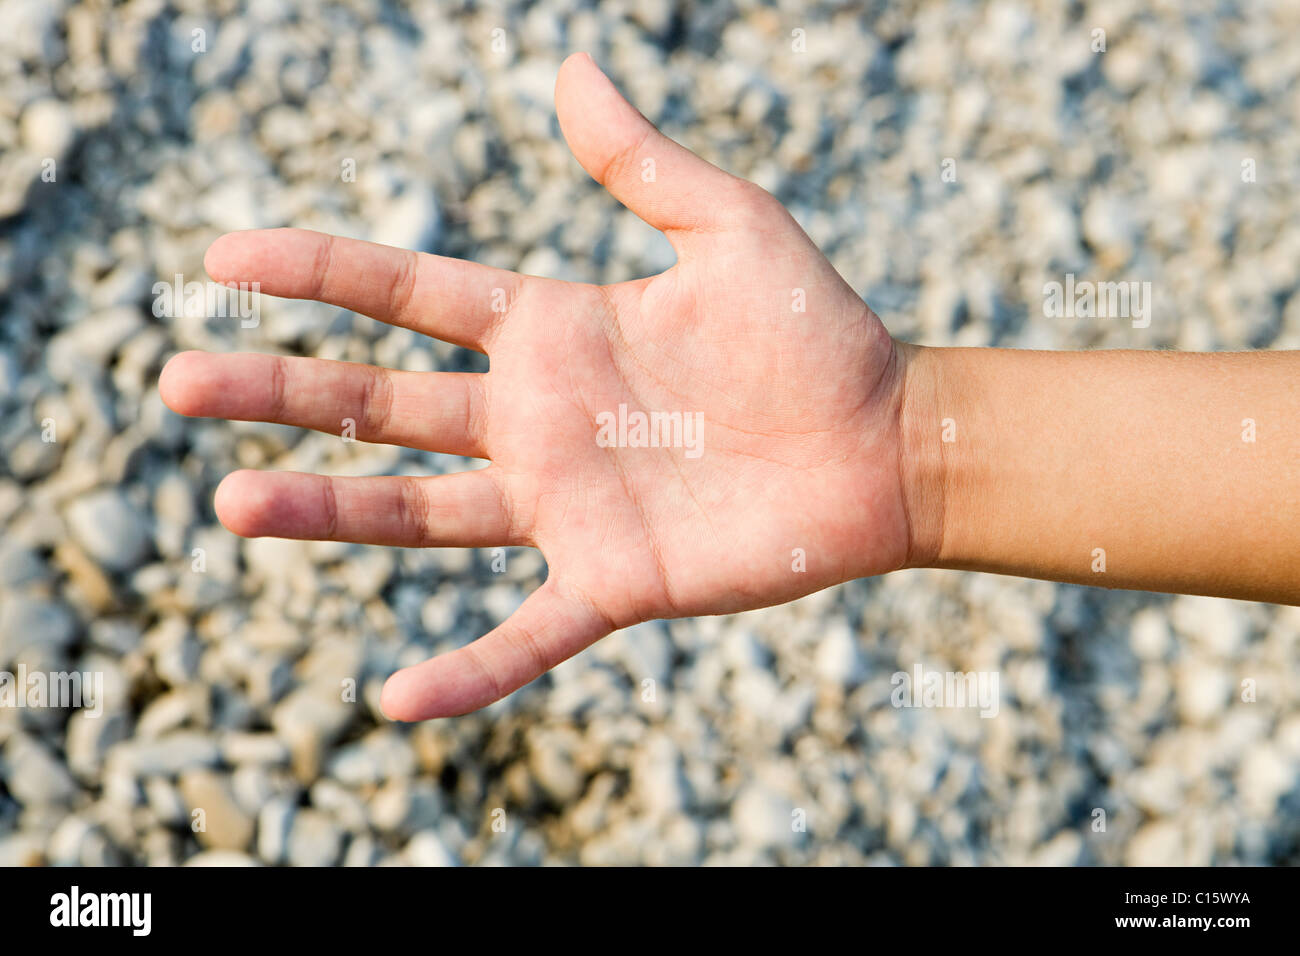 Person's palm against textured background - Stock Image